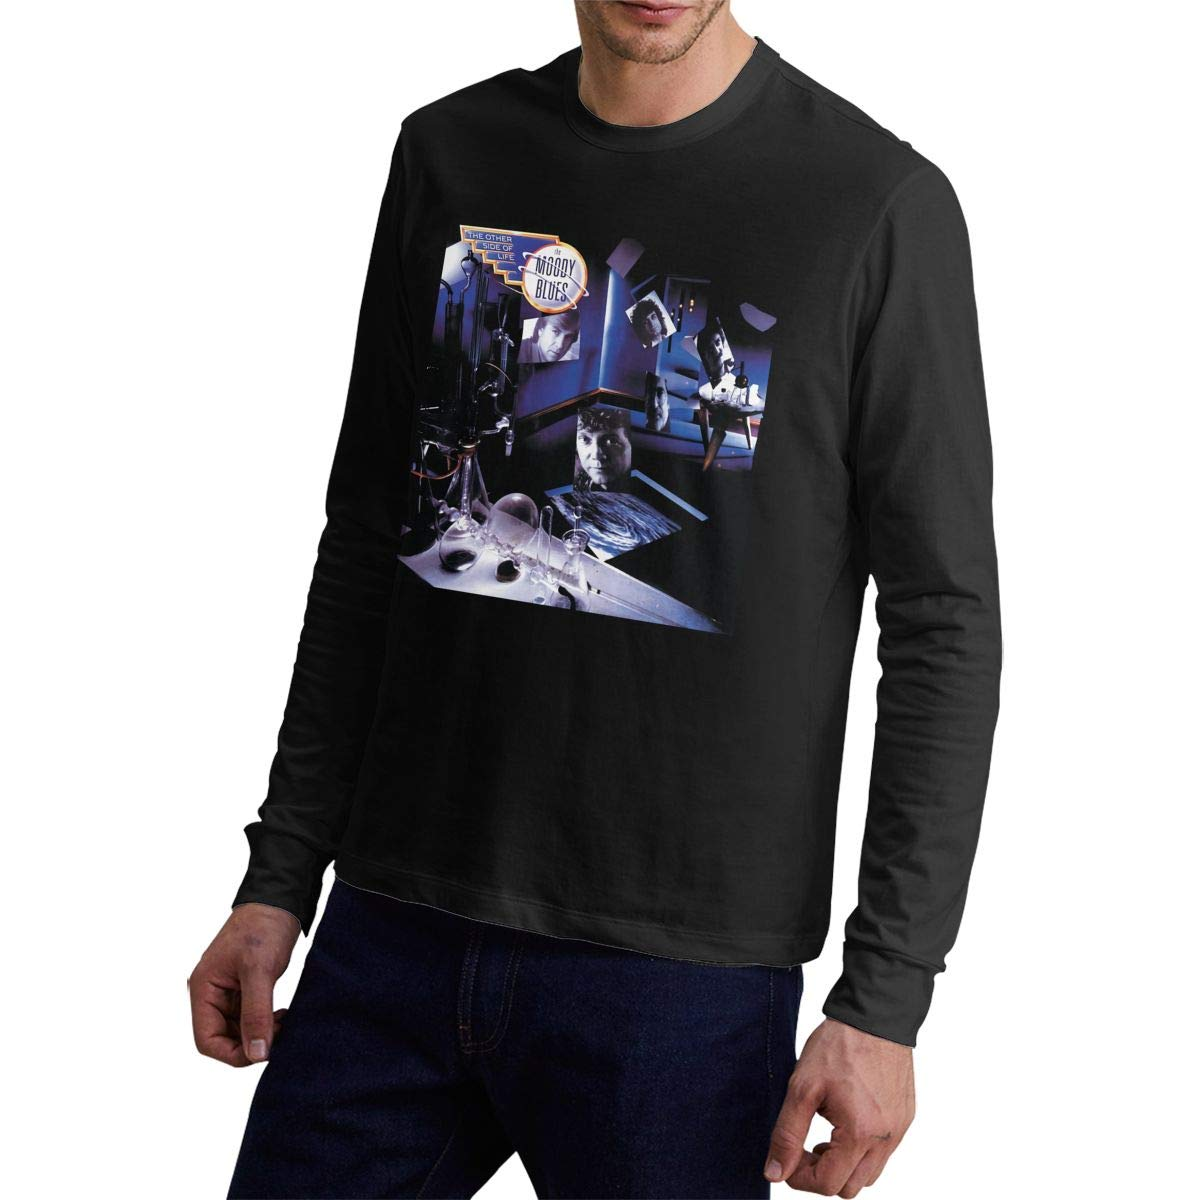 Robertrcastleberry The Moody Blues The Other Side Of Life Man's Fashion Casual Style Shirts